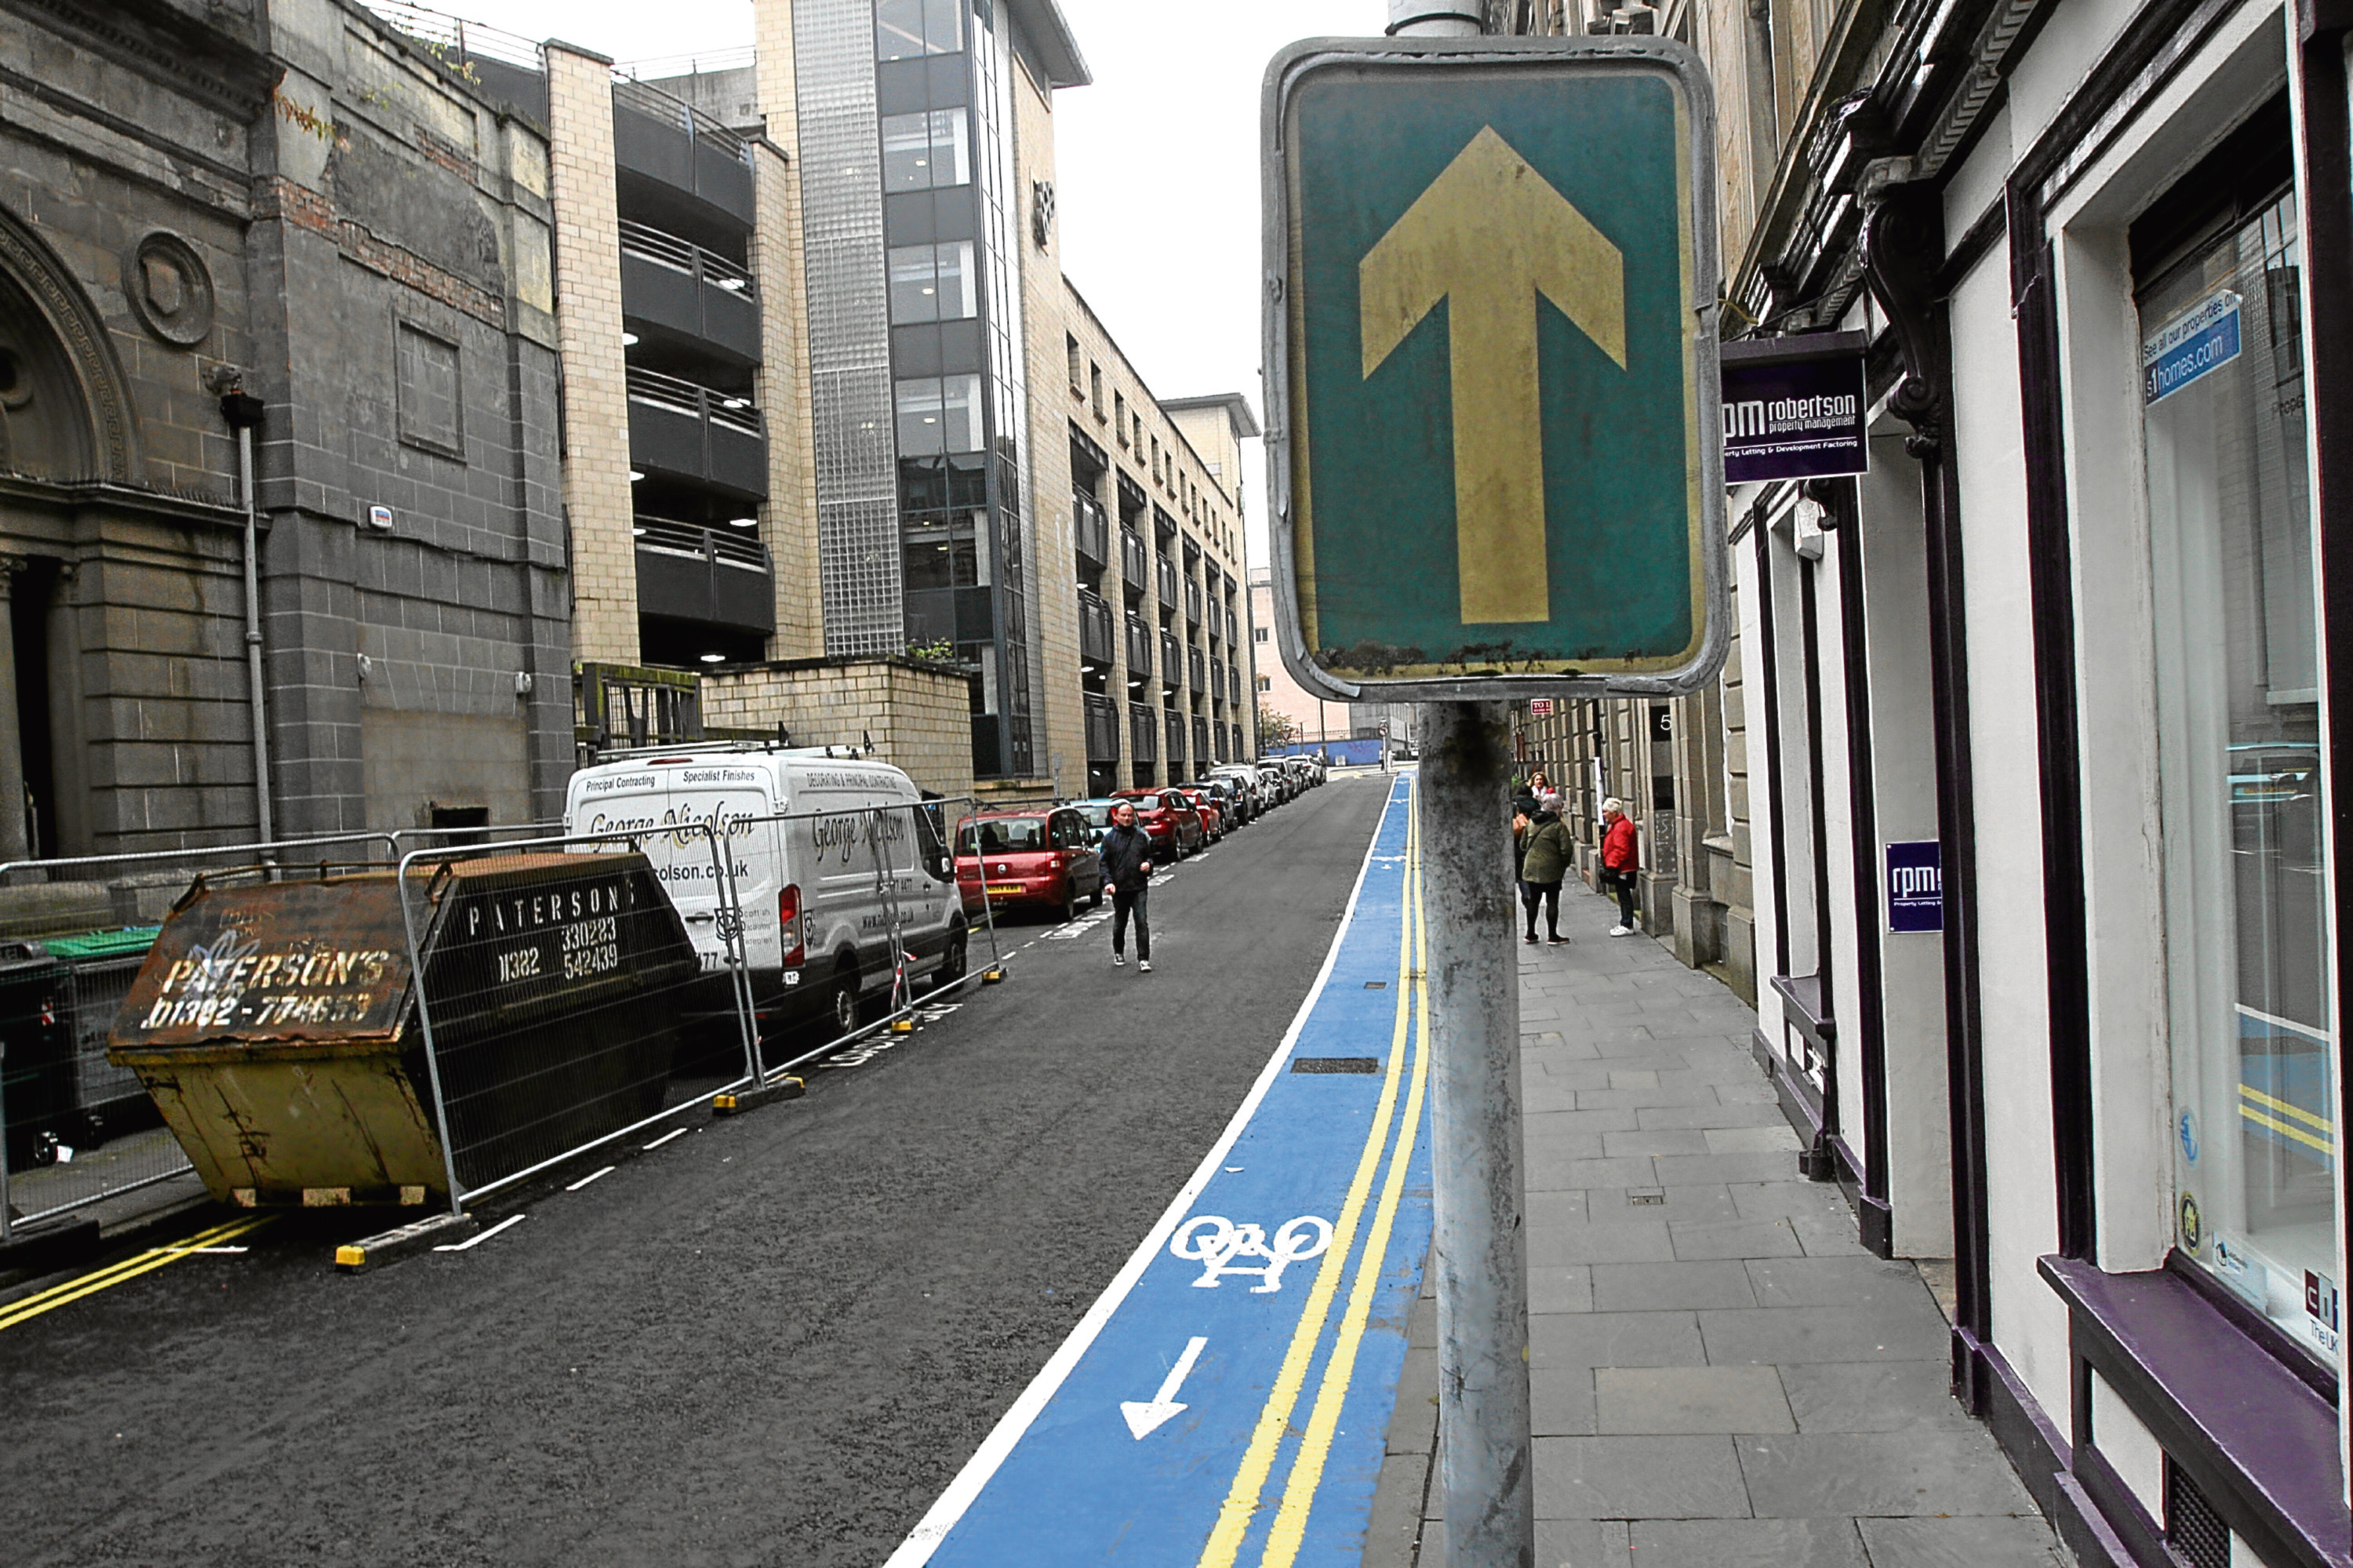 The new cycle lane in Dundee City Centre